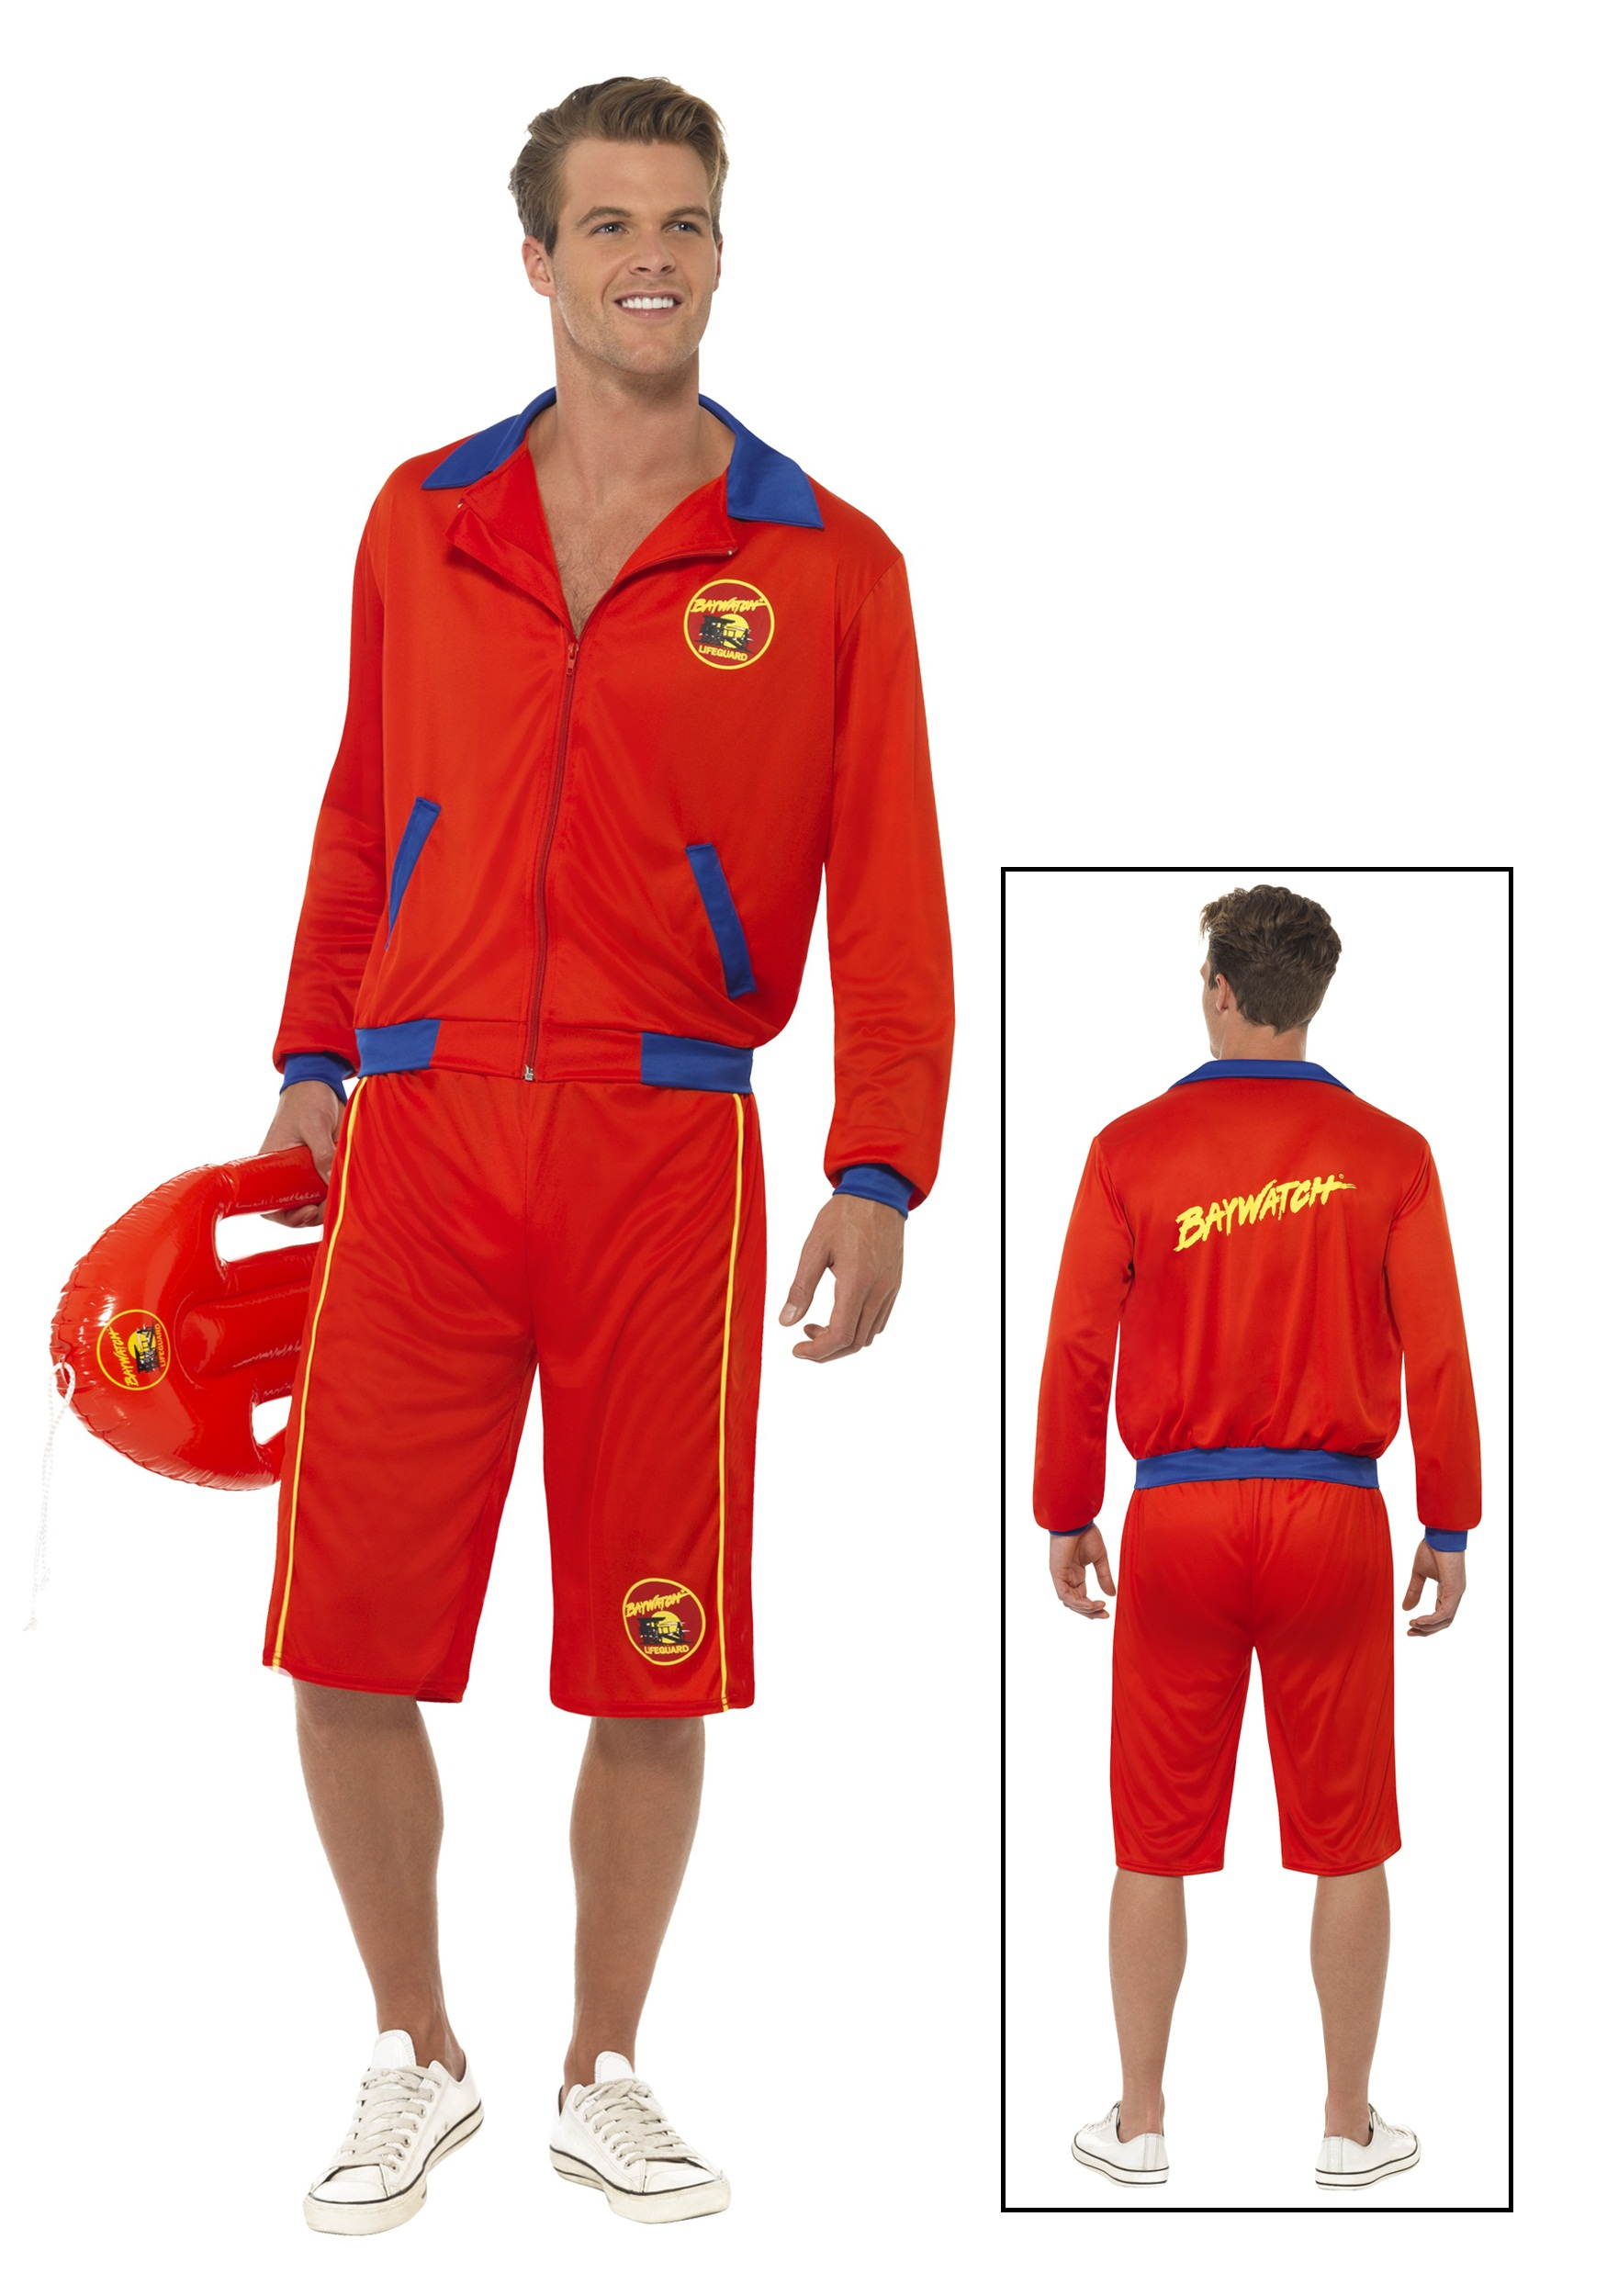 Baywatch Beach Mens Lifeguard Costume  sc 1 st  Halloween Costumes : baywatch costume ideas  - Germanpascual.Com